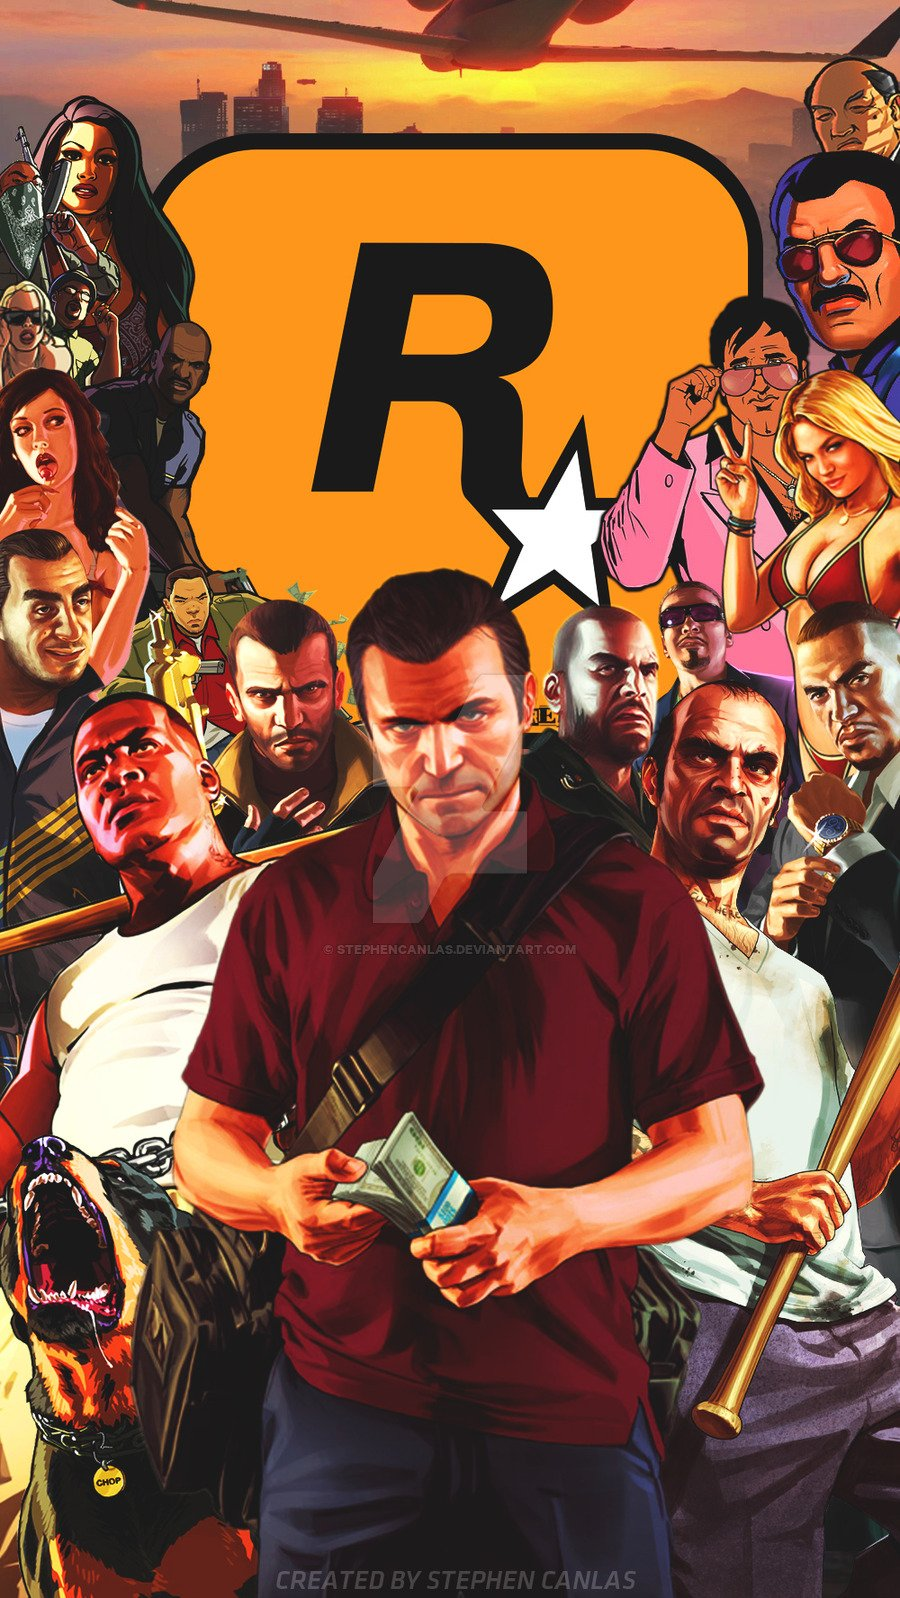 grand theft auto v iphone 5 wallpaper